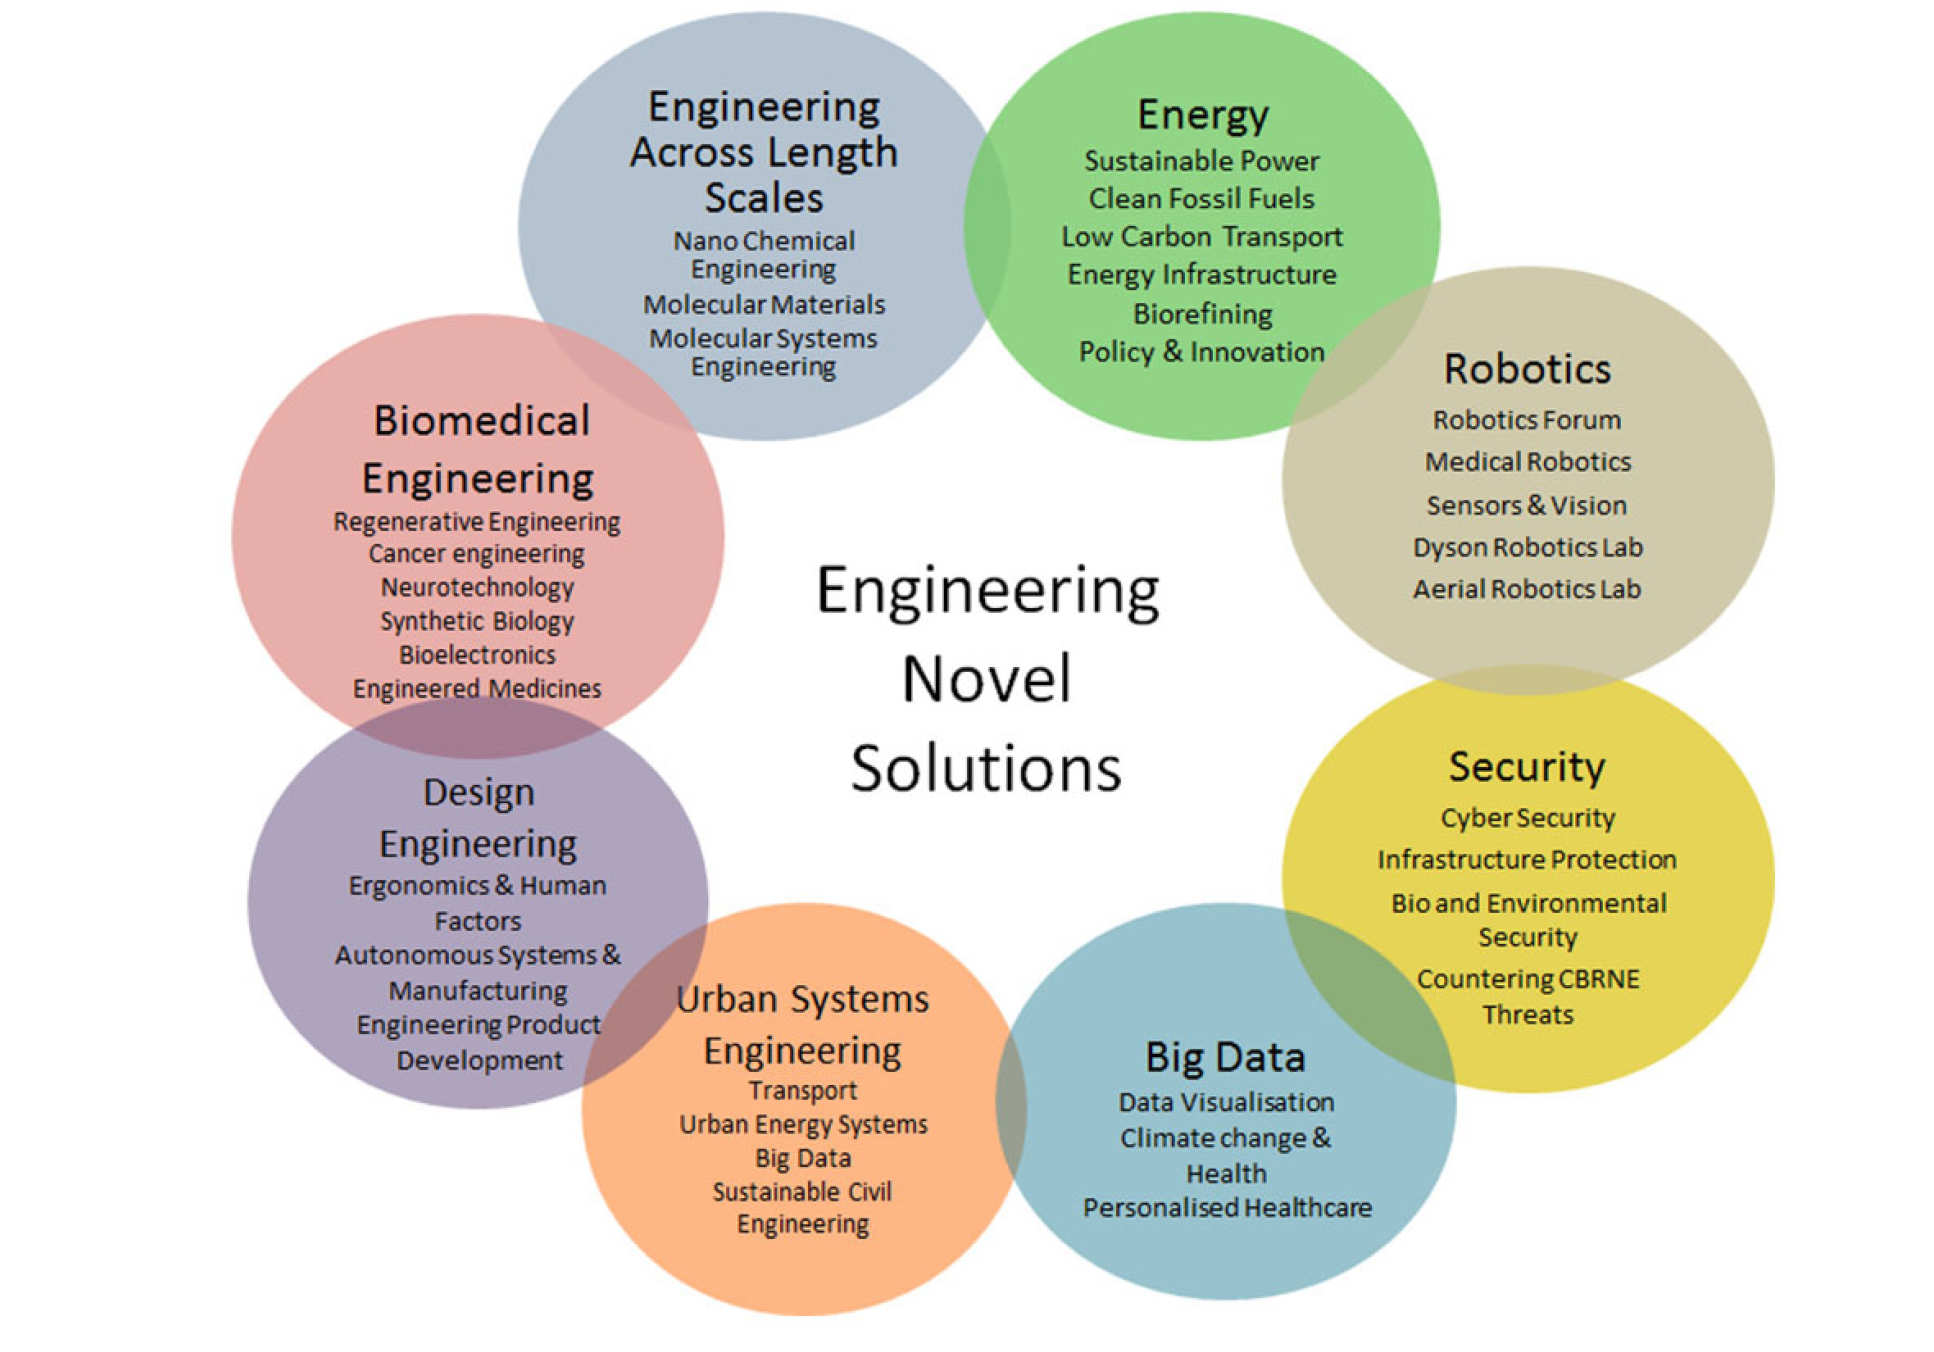 Engineering growth areas: energy, robotics, security, big data, urban energy systems, design engineering, biomedical engineering, engineering across length scales